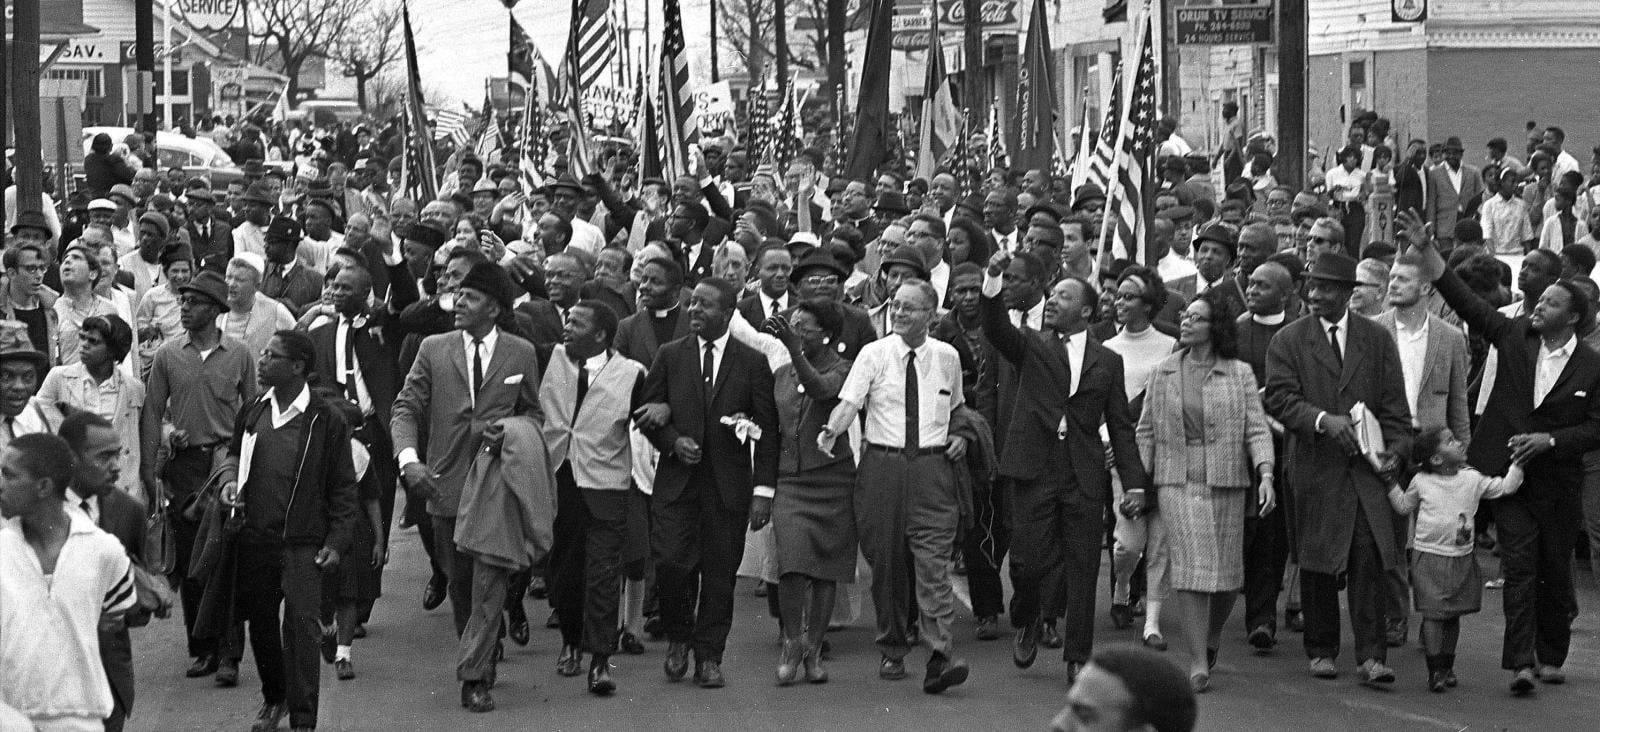 A group of protestors march for Civil Rights in the 1960s.